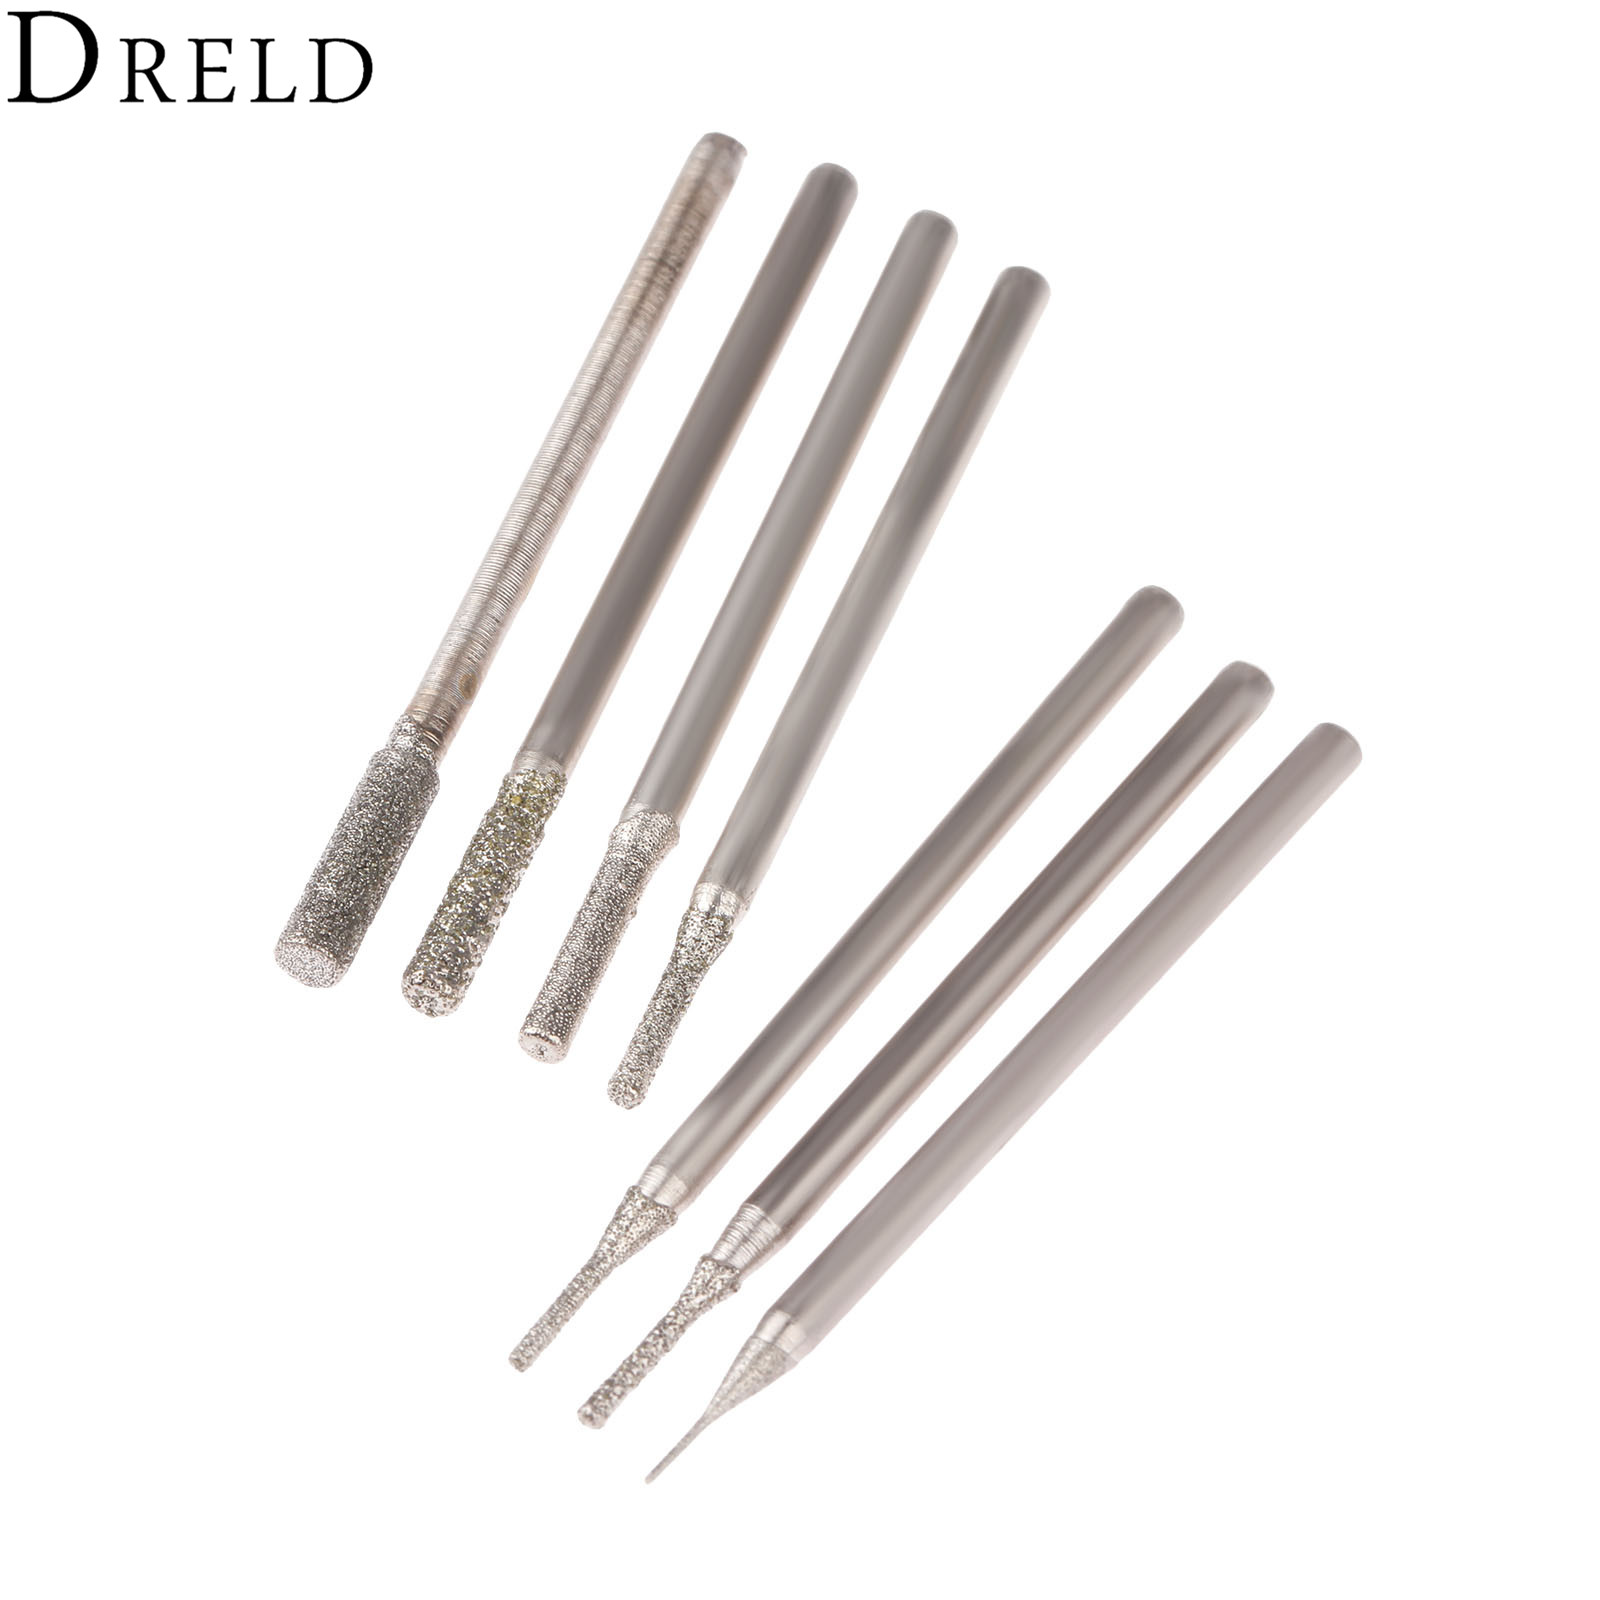 uxcell Diamond Burrs Set Grinding Drill Bits for Carving Rotary Tool 1//8-Inch Shank Small Head 150 Grit 100 Pcs